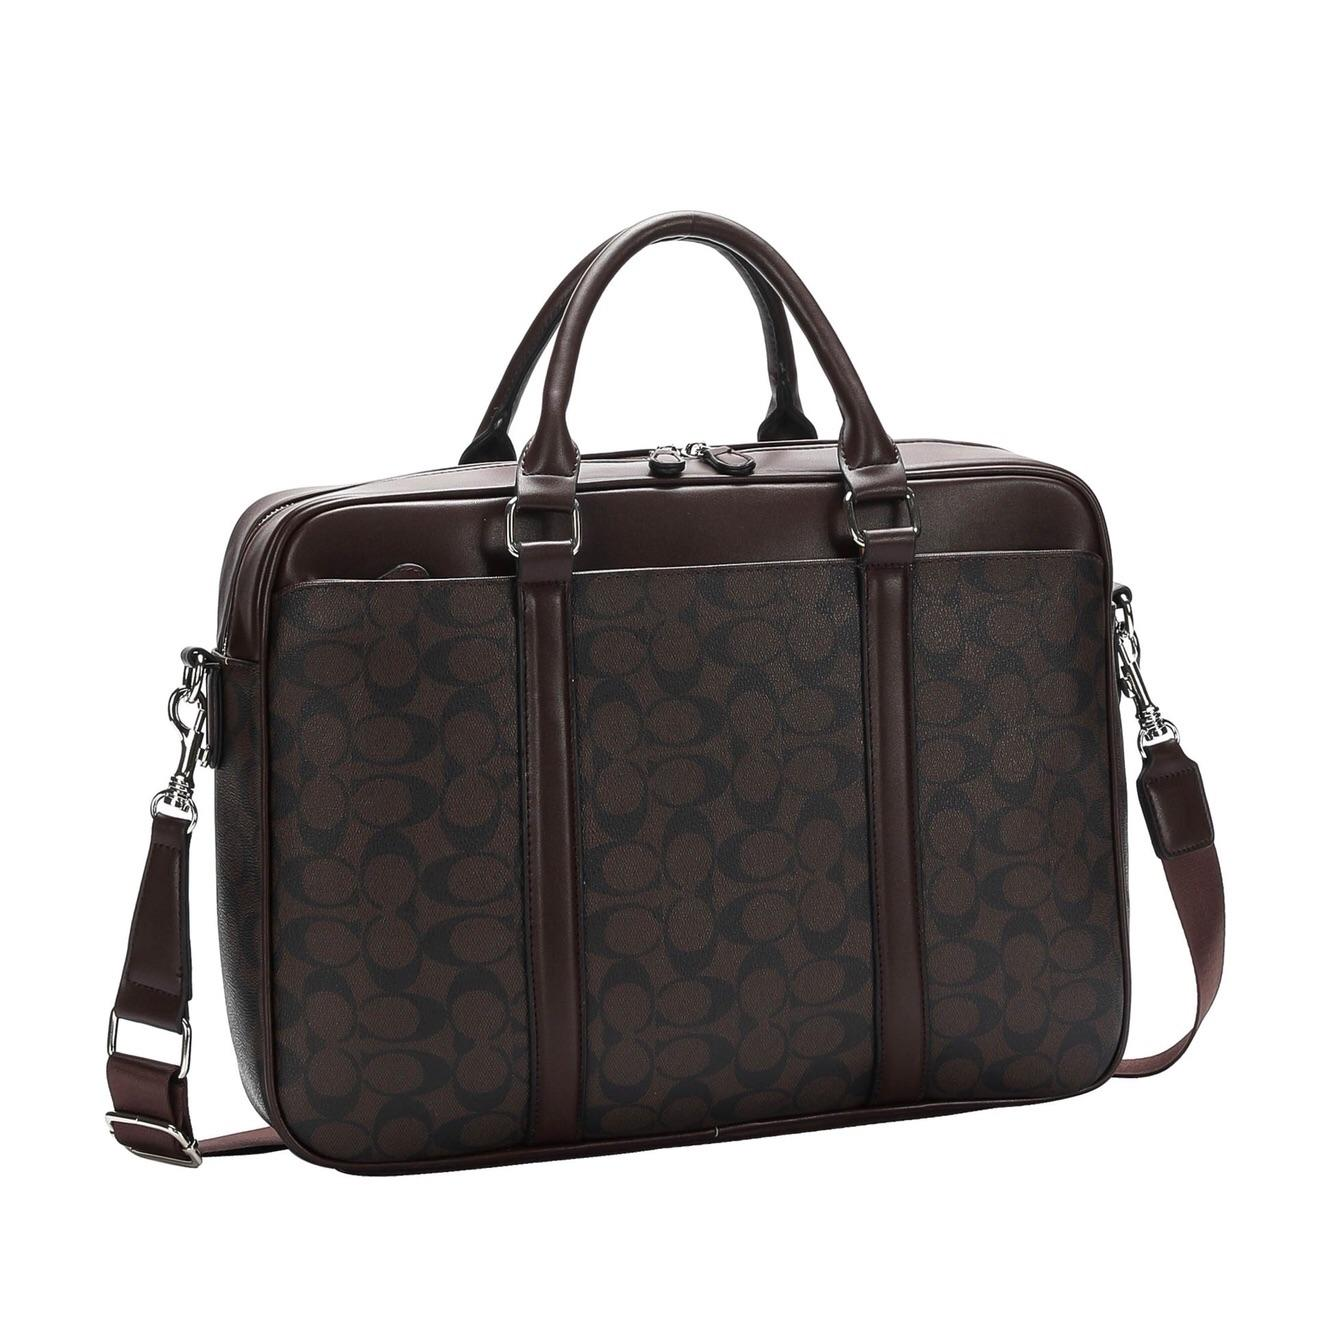 9e059a46336c Formal Bags for sale - Formal Bags for Men Online Deals & Prices in ...